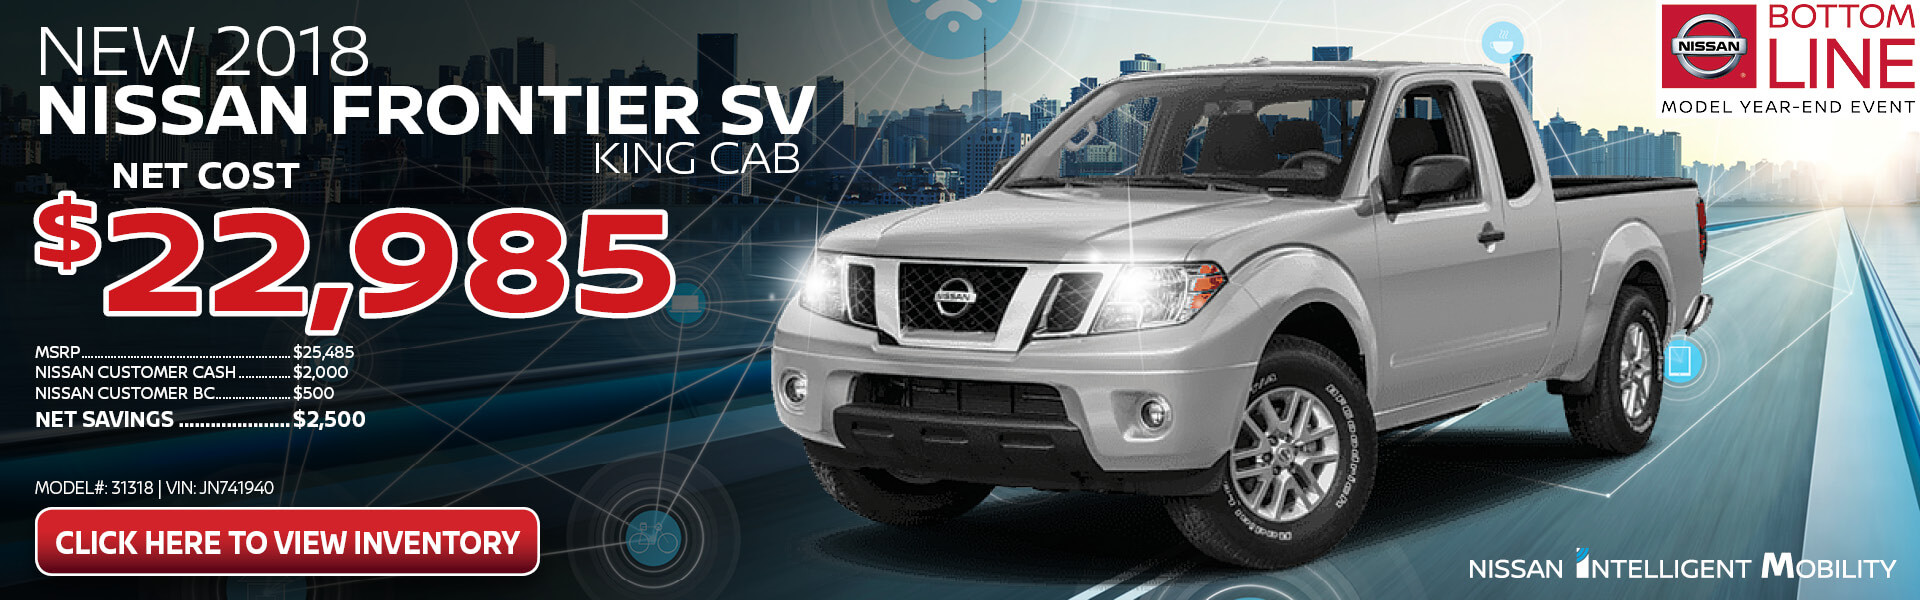 Nissan Frontier Purchase $22,985